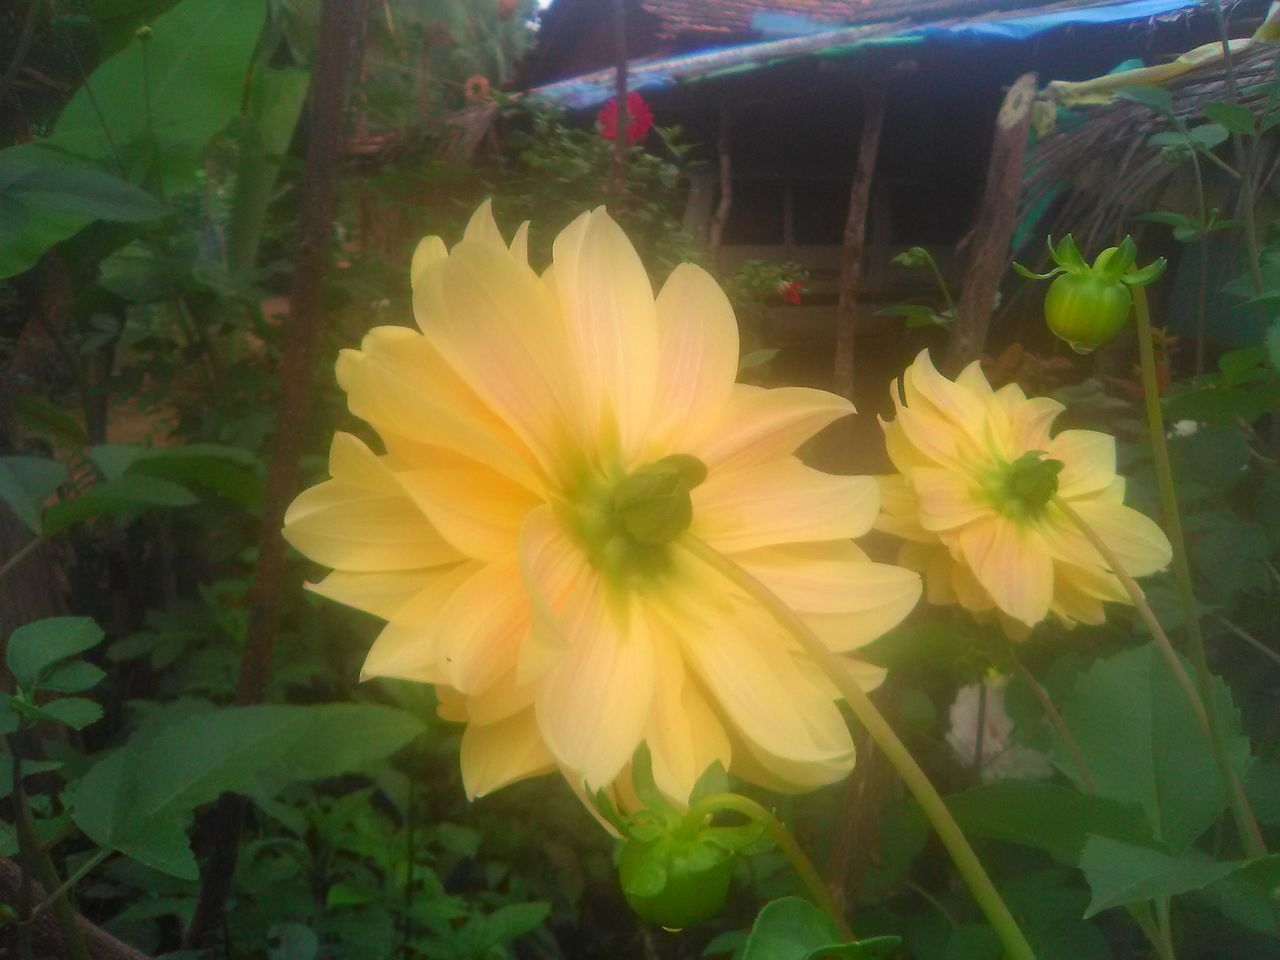 flower, petal, fragility, plant, freshness, growth, flower head, beauty in nature, nature, yellow, no people, blooming, day, close-up, outdoors